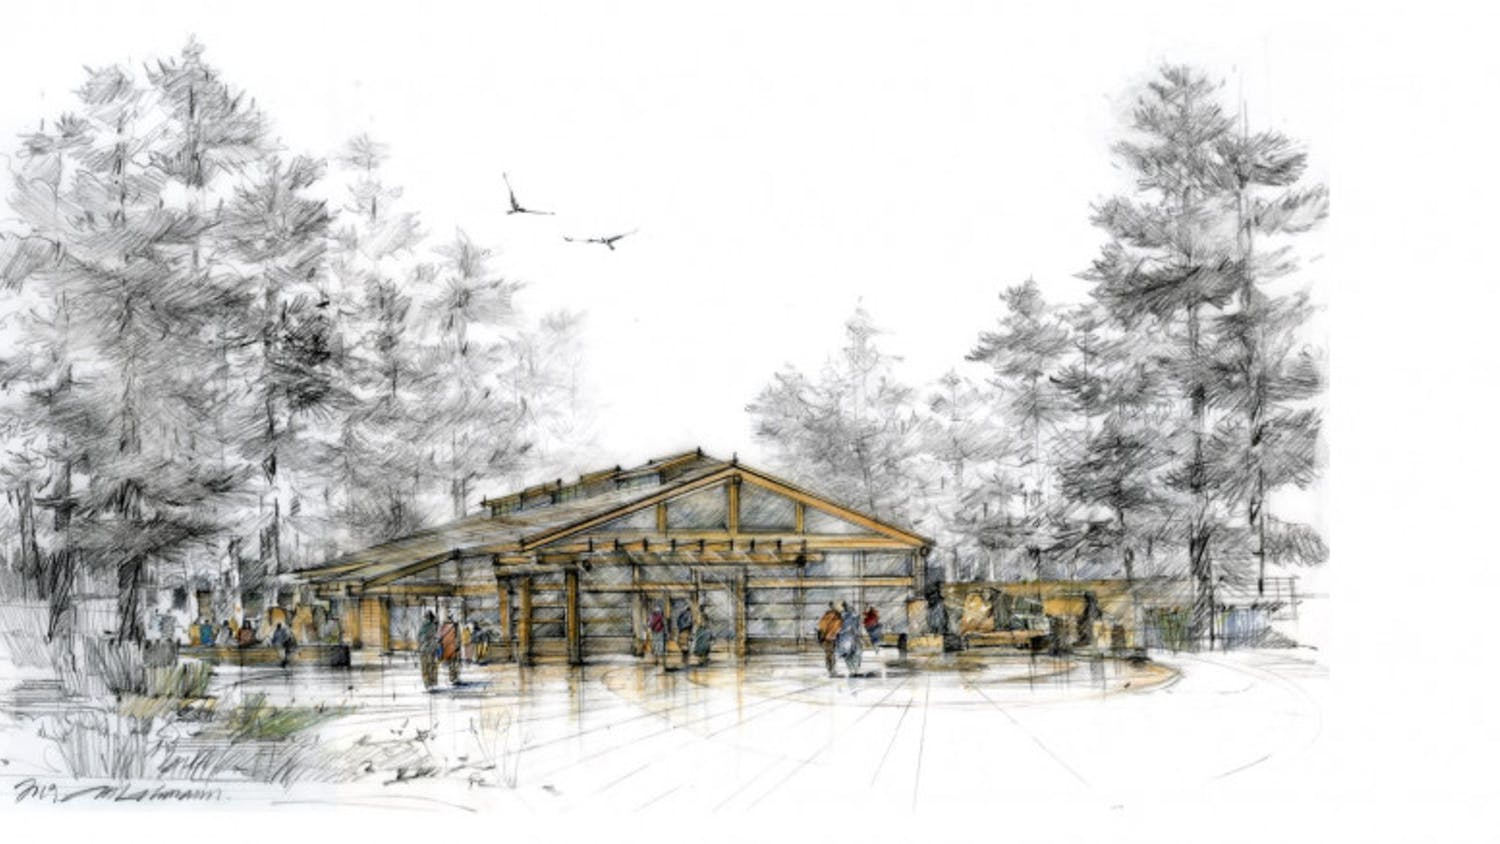 An initial draft of the proposed longhouse to be built at Western Washington University. The large cedar structure will be used to host Native American Student Union events and will be a cultural center for meetings, workshops and educational seminars. // Illustration courtesy of Laural Ballew